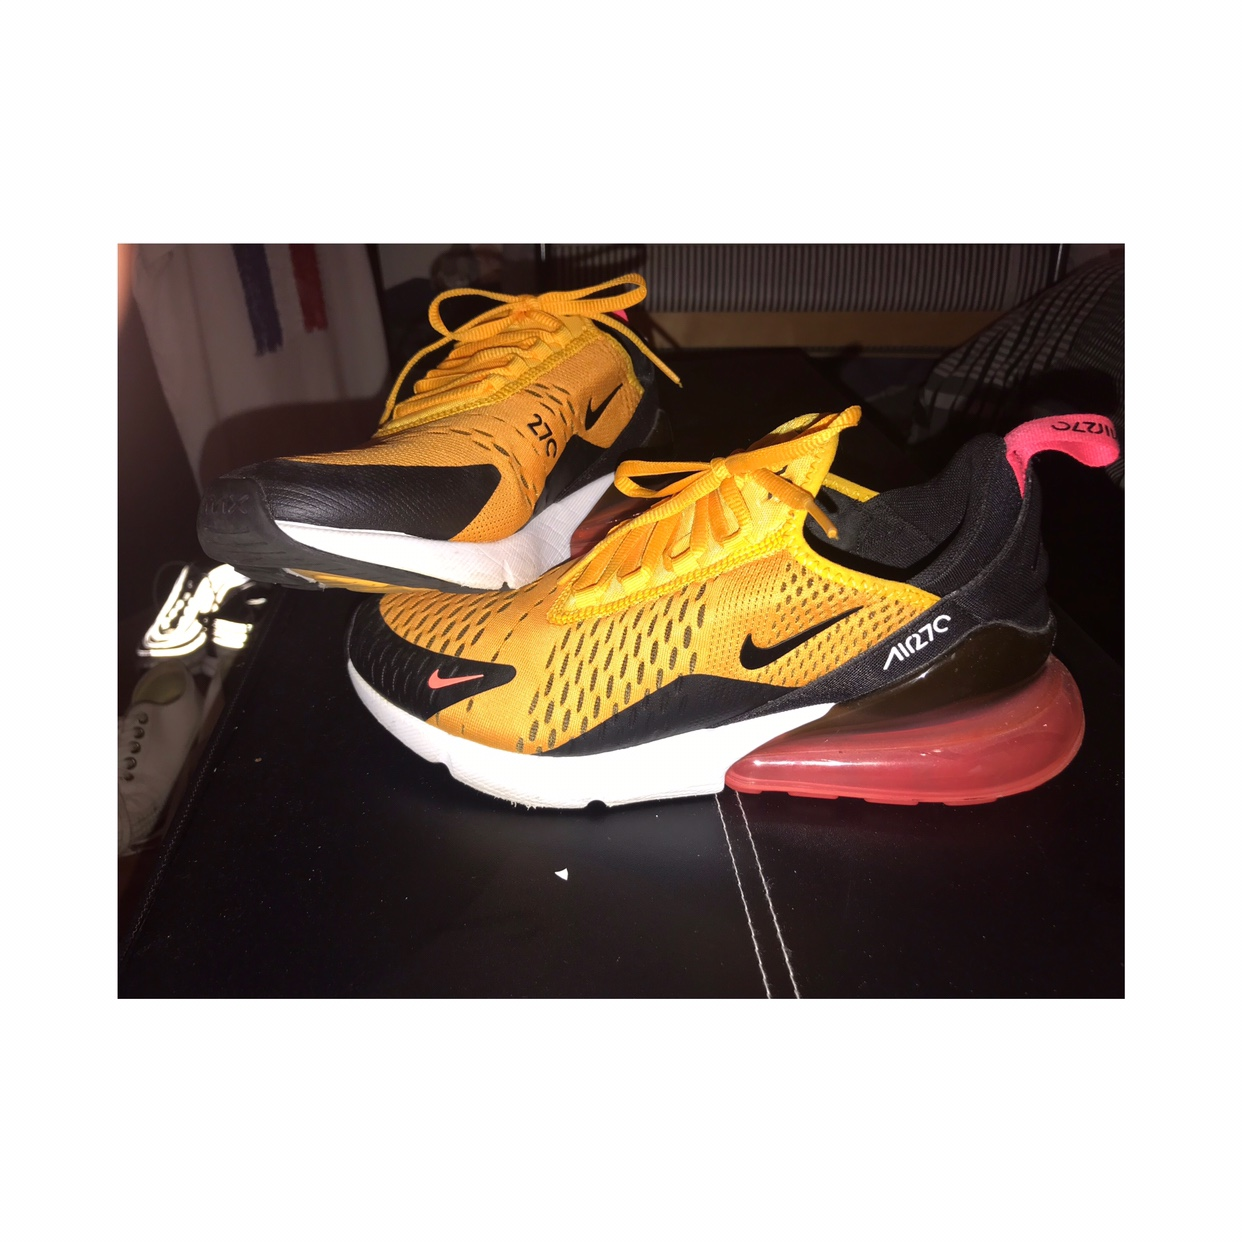 detailed look cd2a4 51661 Selling YELLOW/PINK/BLACK/WHITE NIKE AIR MAX 270s ...